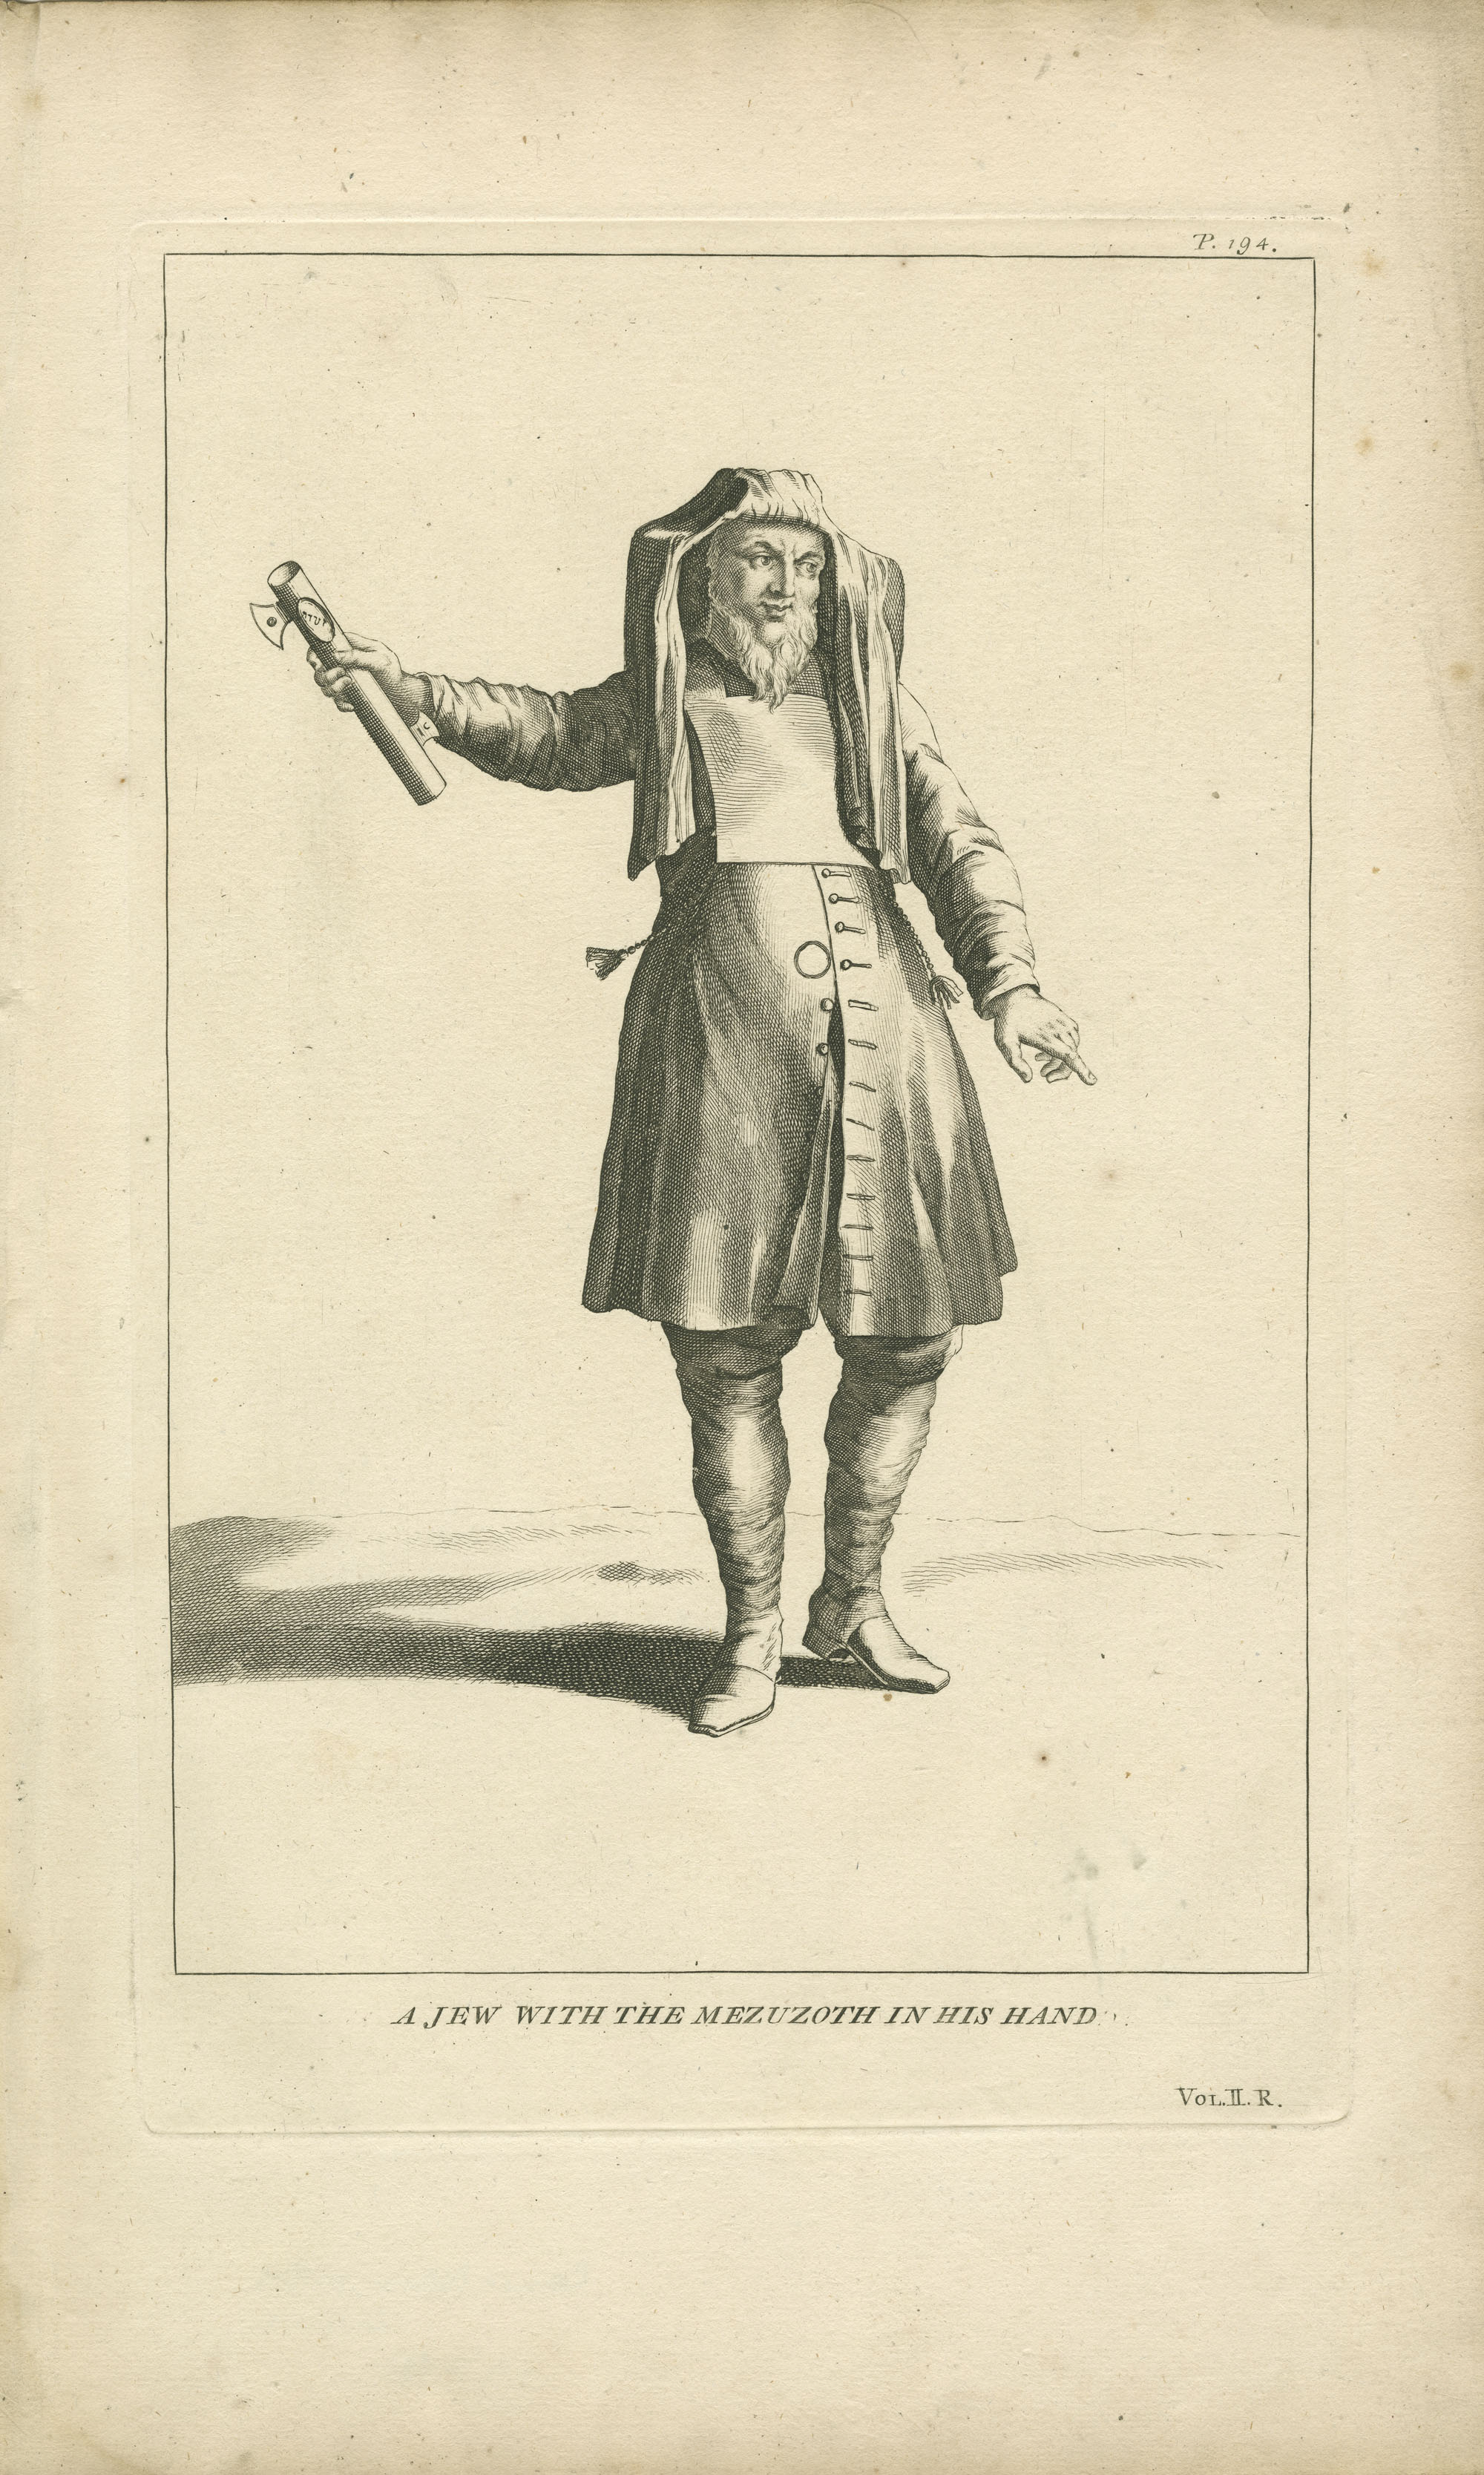 A Jew with the mezuzoth in his hand